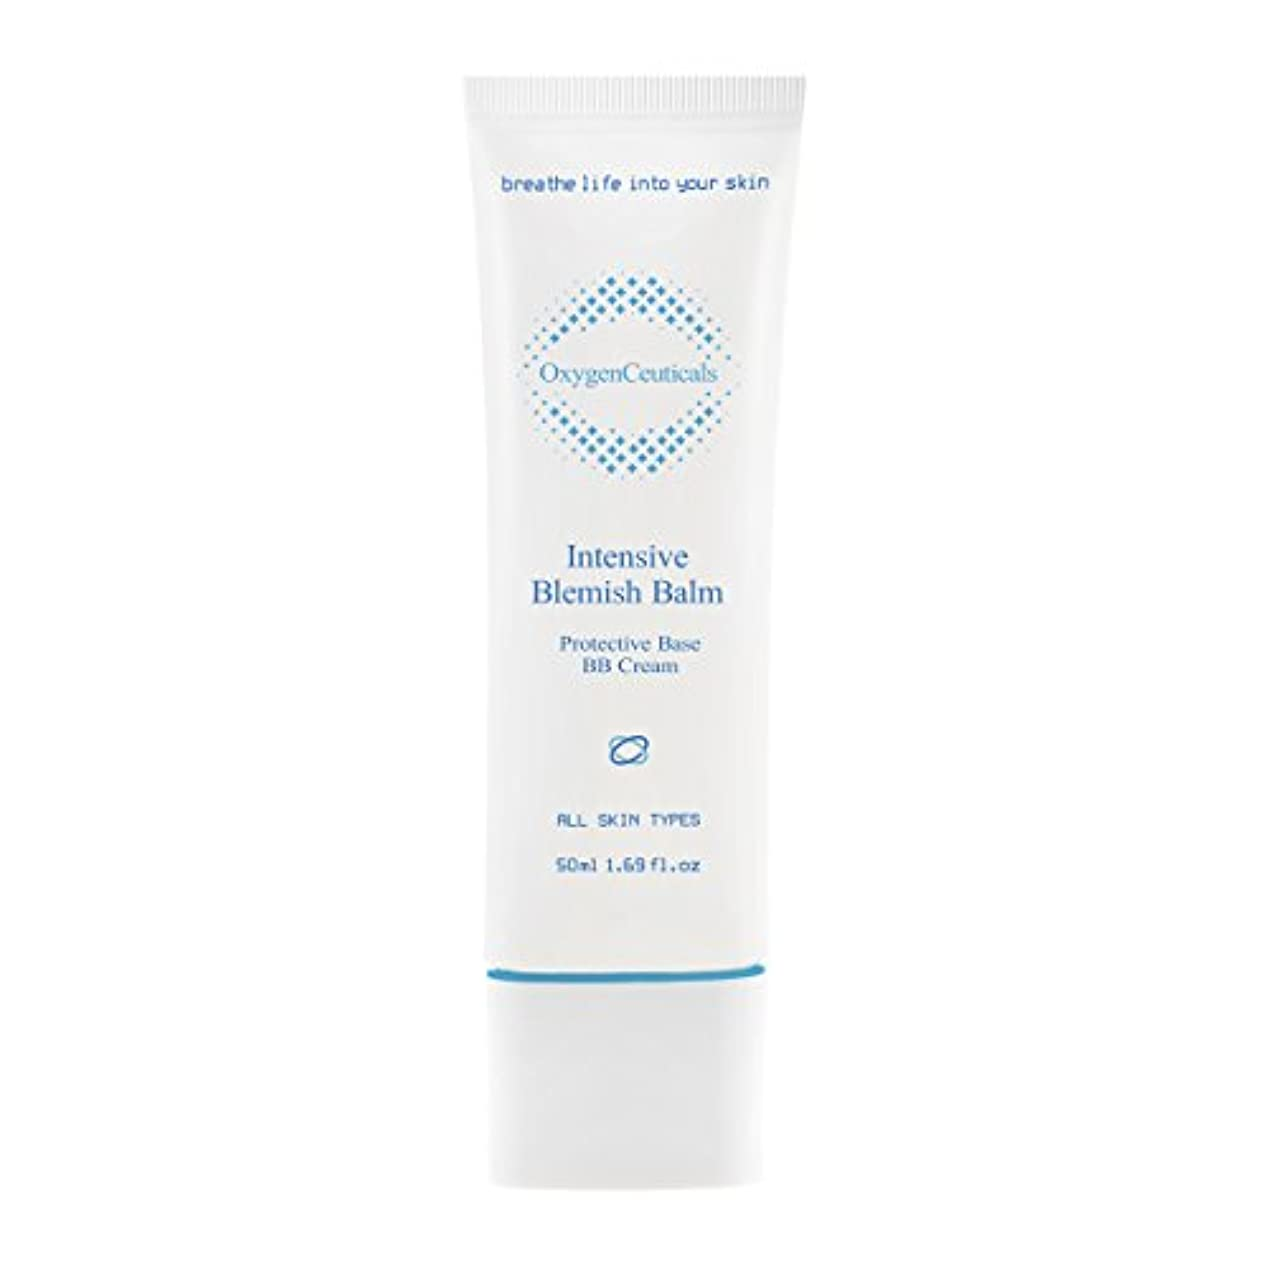 [ Oxygen Ceuticals ] オキシジェンシューティカルズ 酸素BBクリーム[再.生BB] 50ml. Intensive Blemish Balm(BB Cream) 50ml. X Mask Pack 1p.